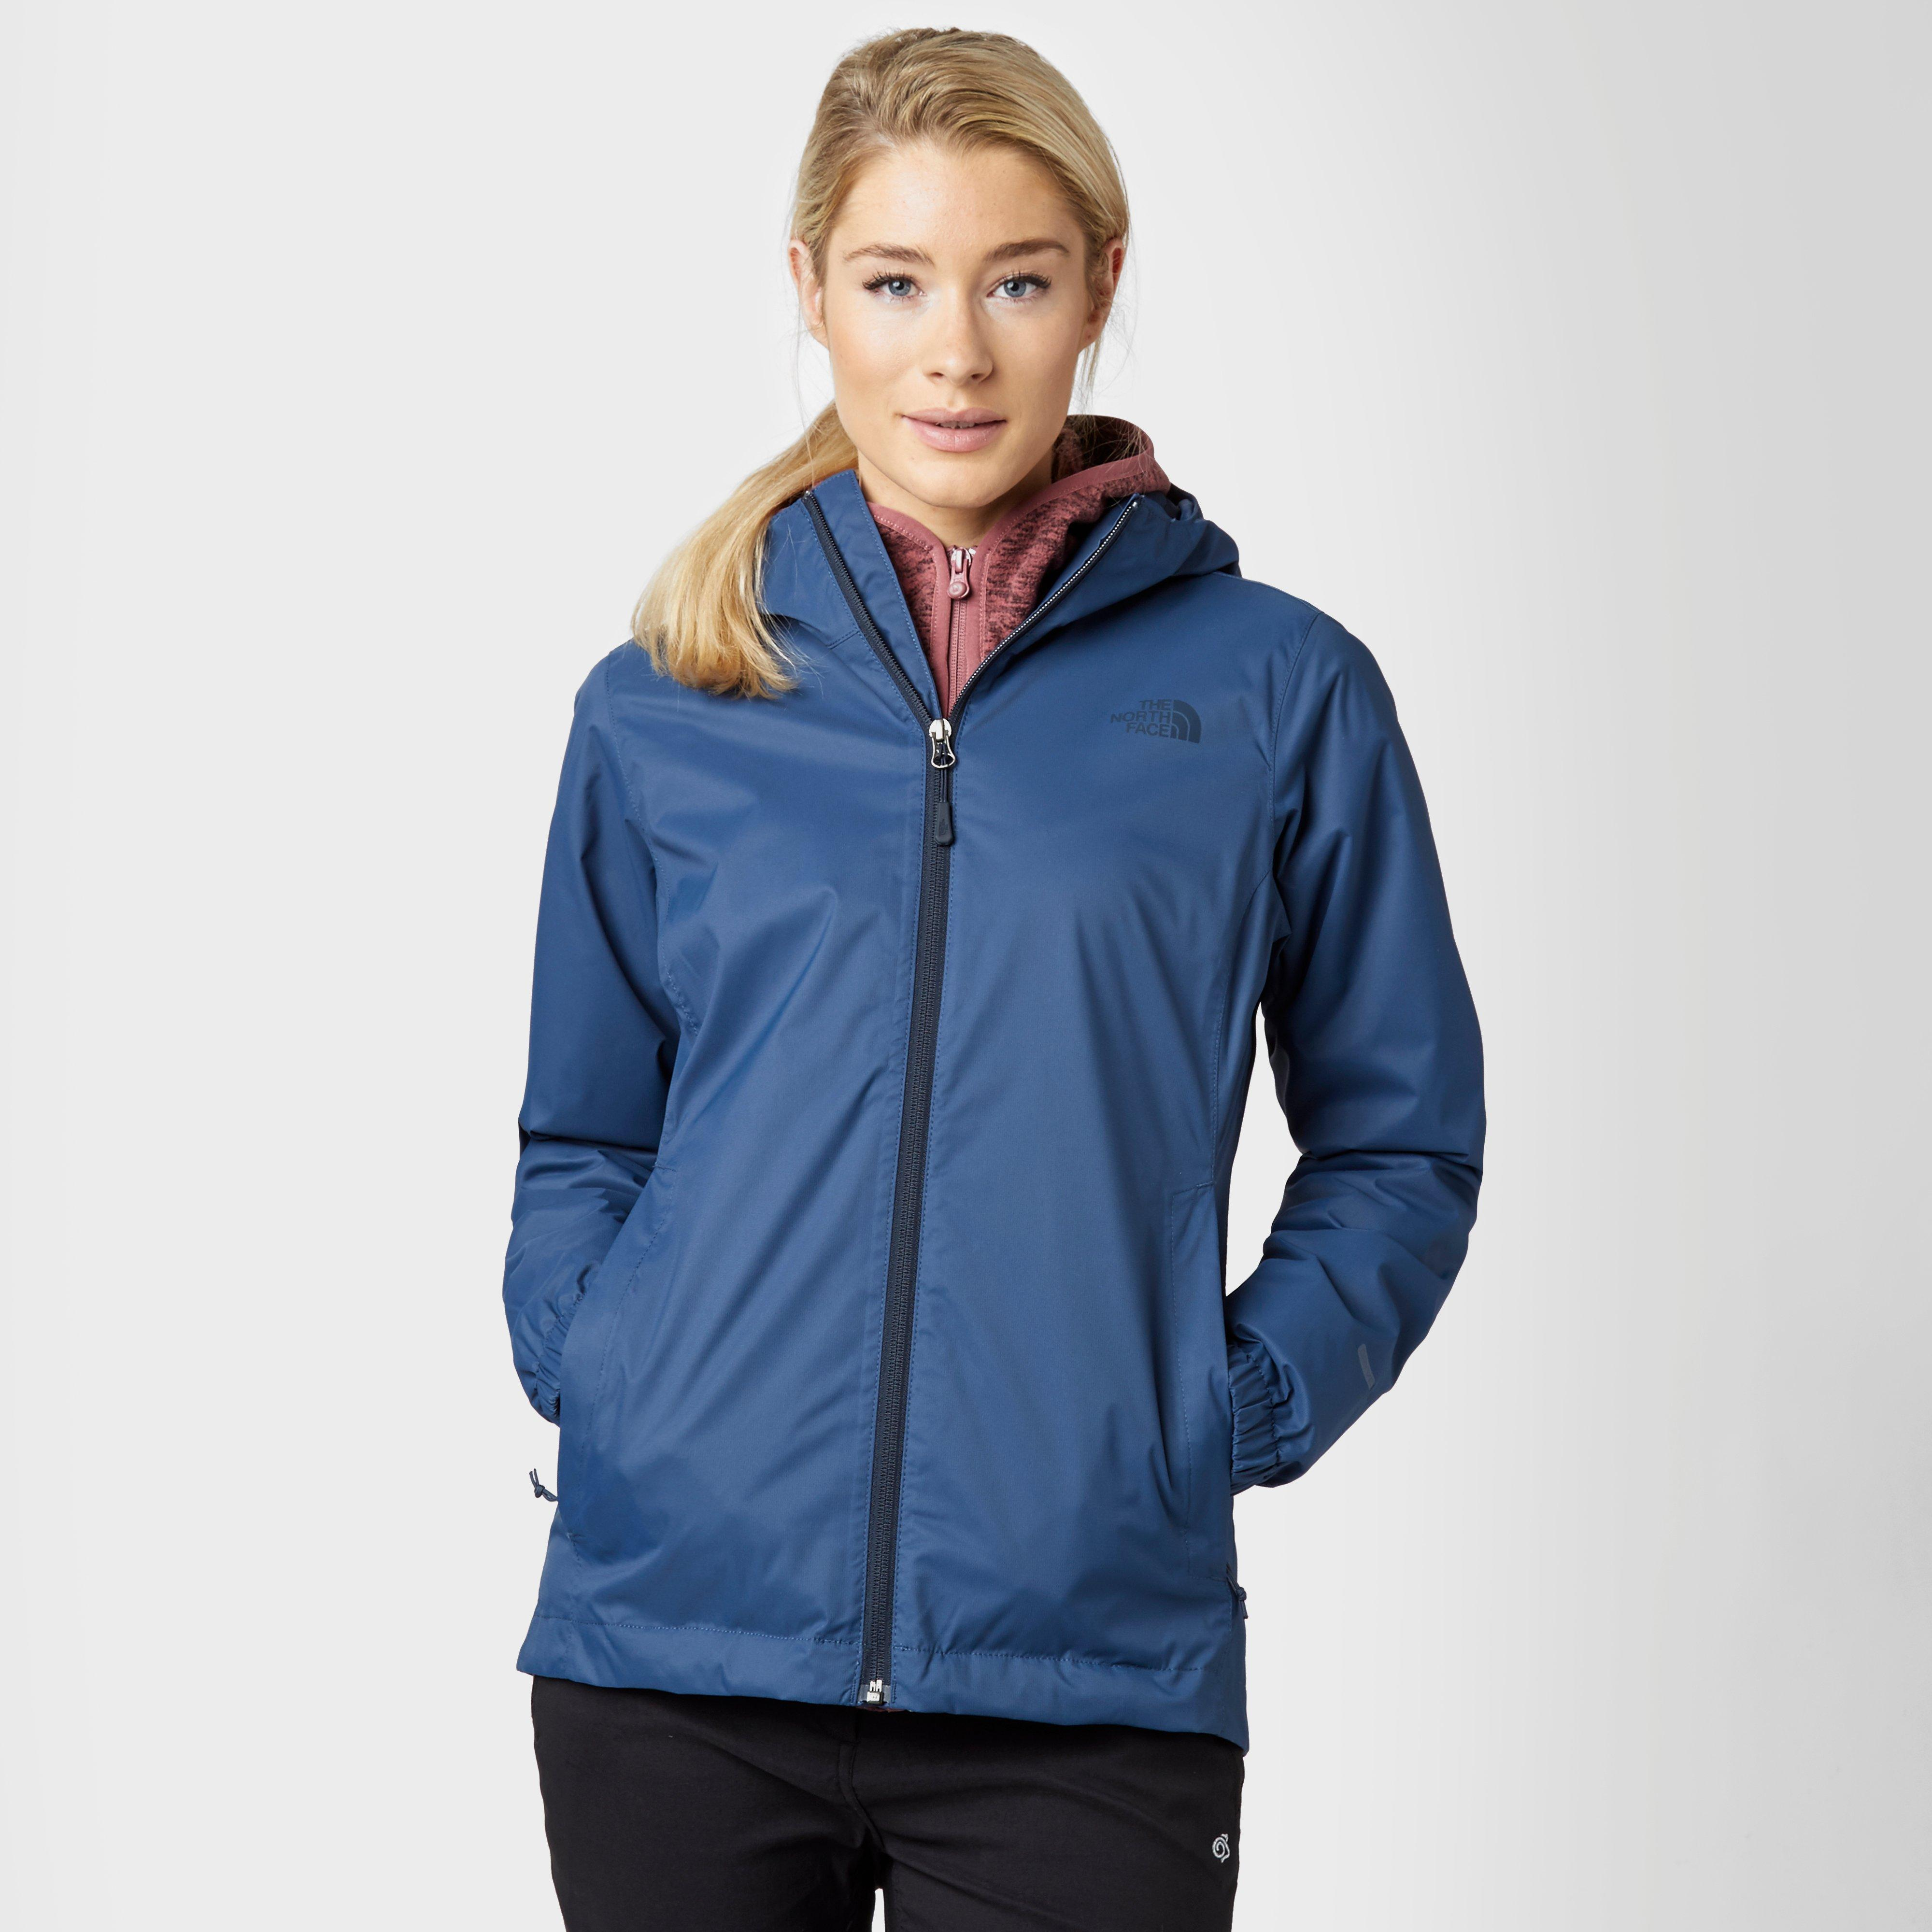 Next. scroll downscroll up · THE NORTH FACE logo 6bd12acd8